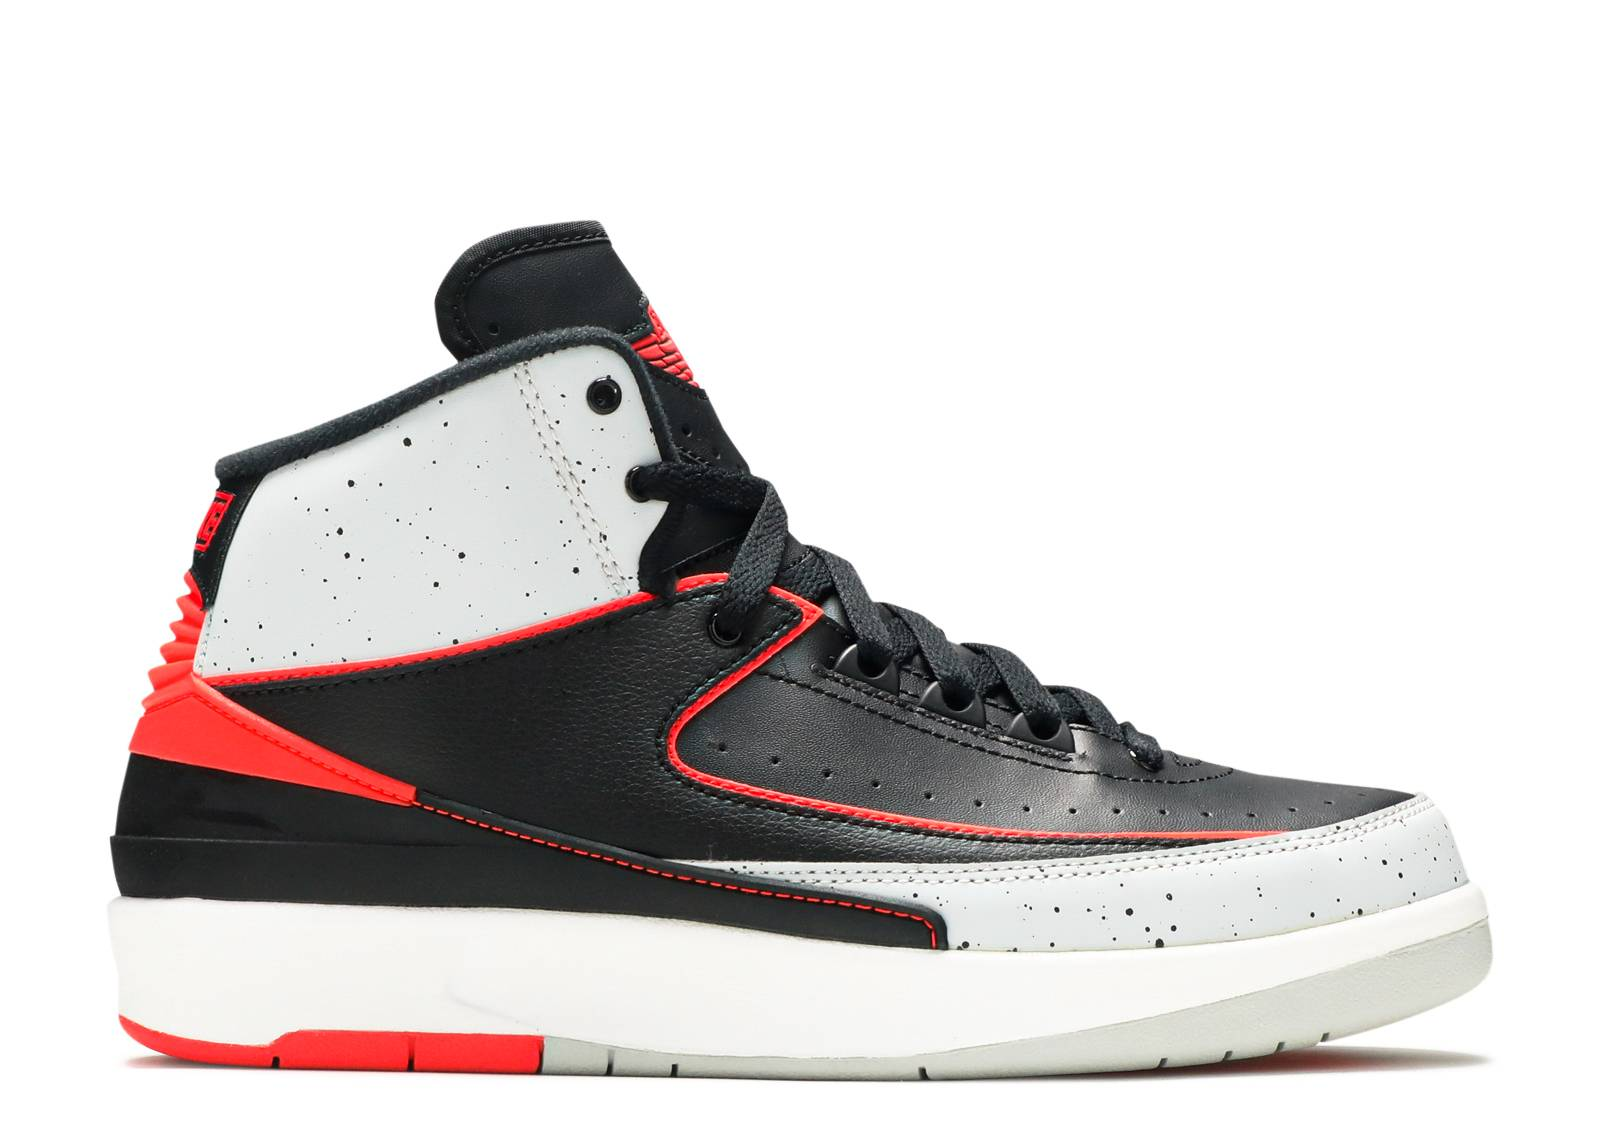 "Air Jordan 2 Retro BG 'Infrared 23' ""Infrared 23"""